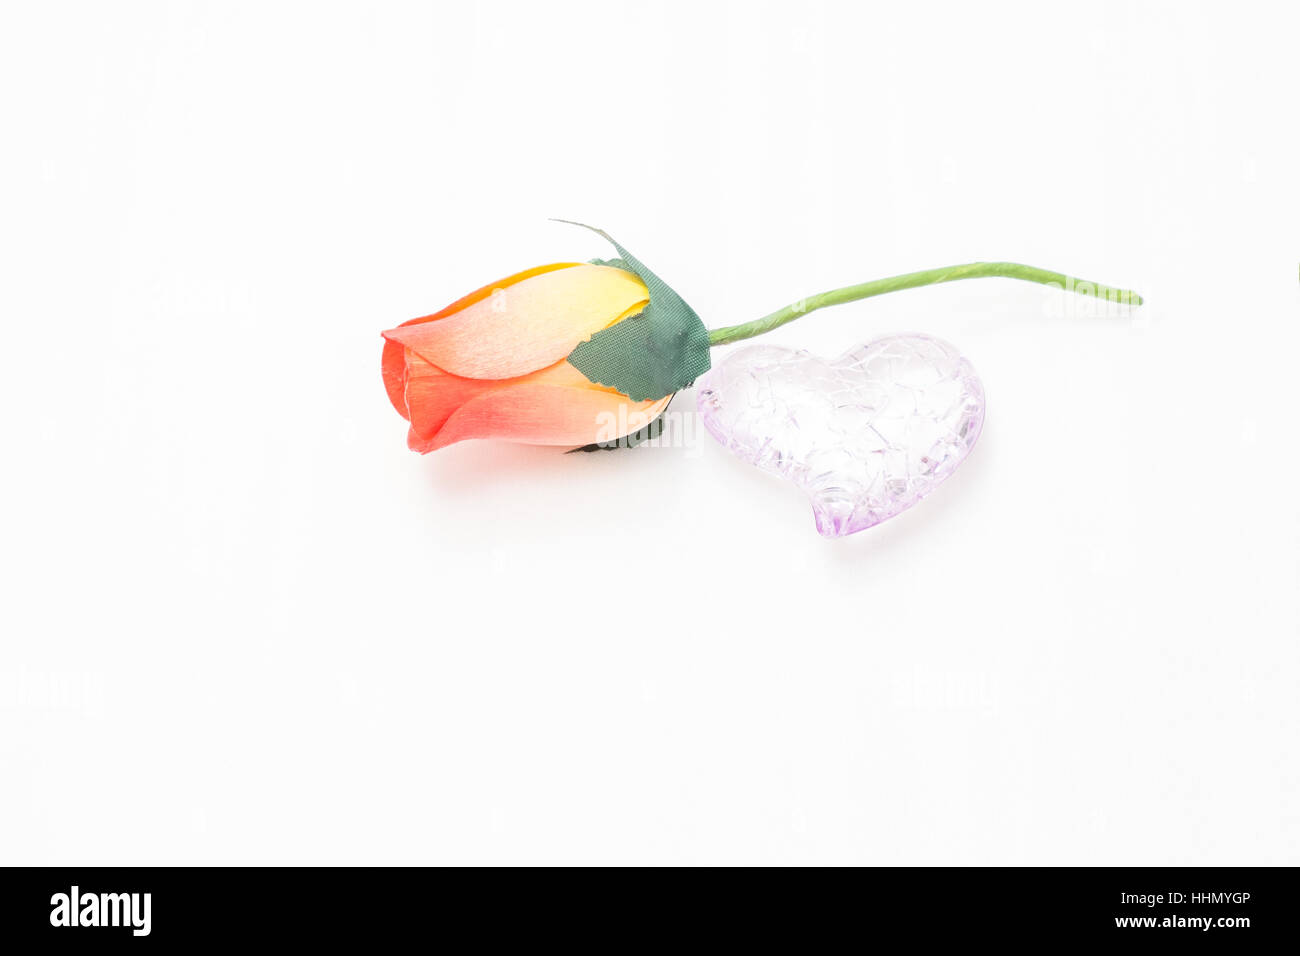 rose by a broken to seek reconciliation day valentine heart - Stock Image